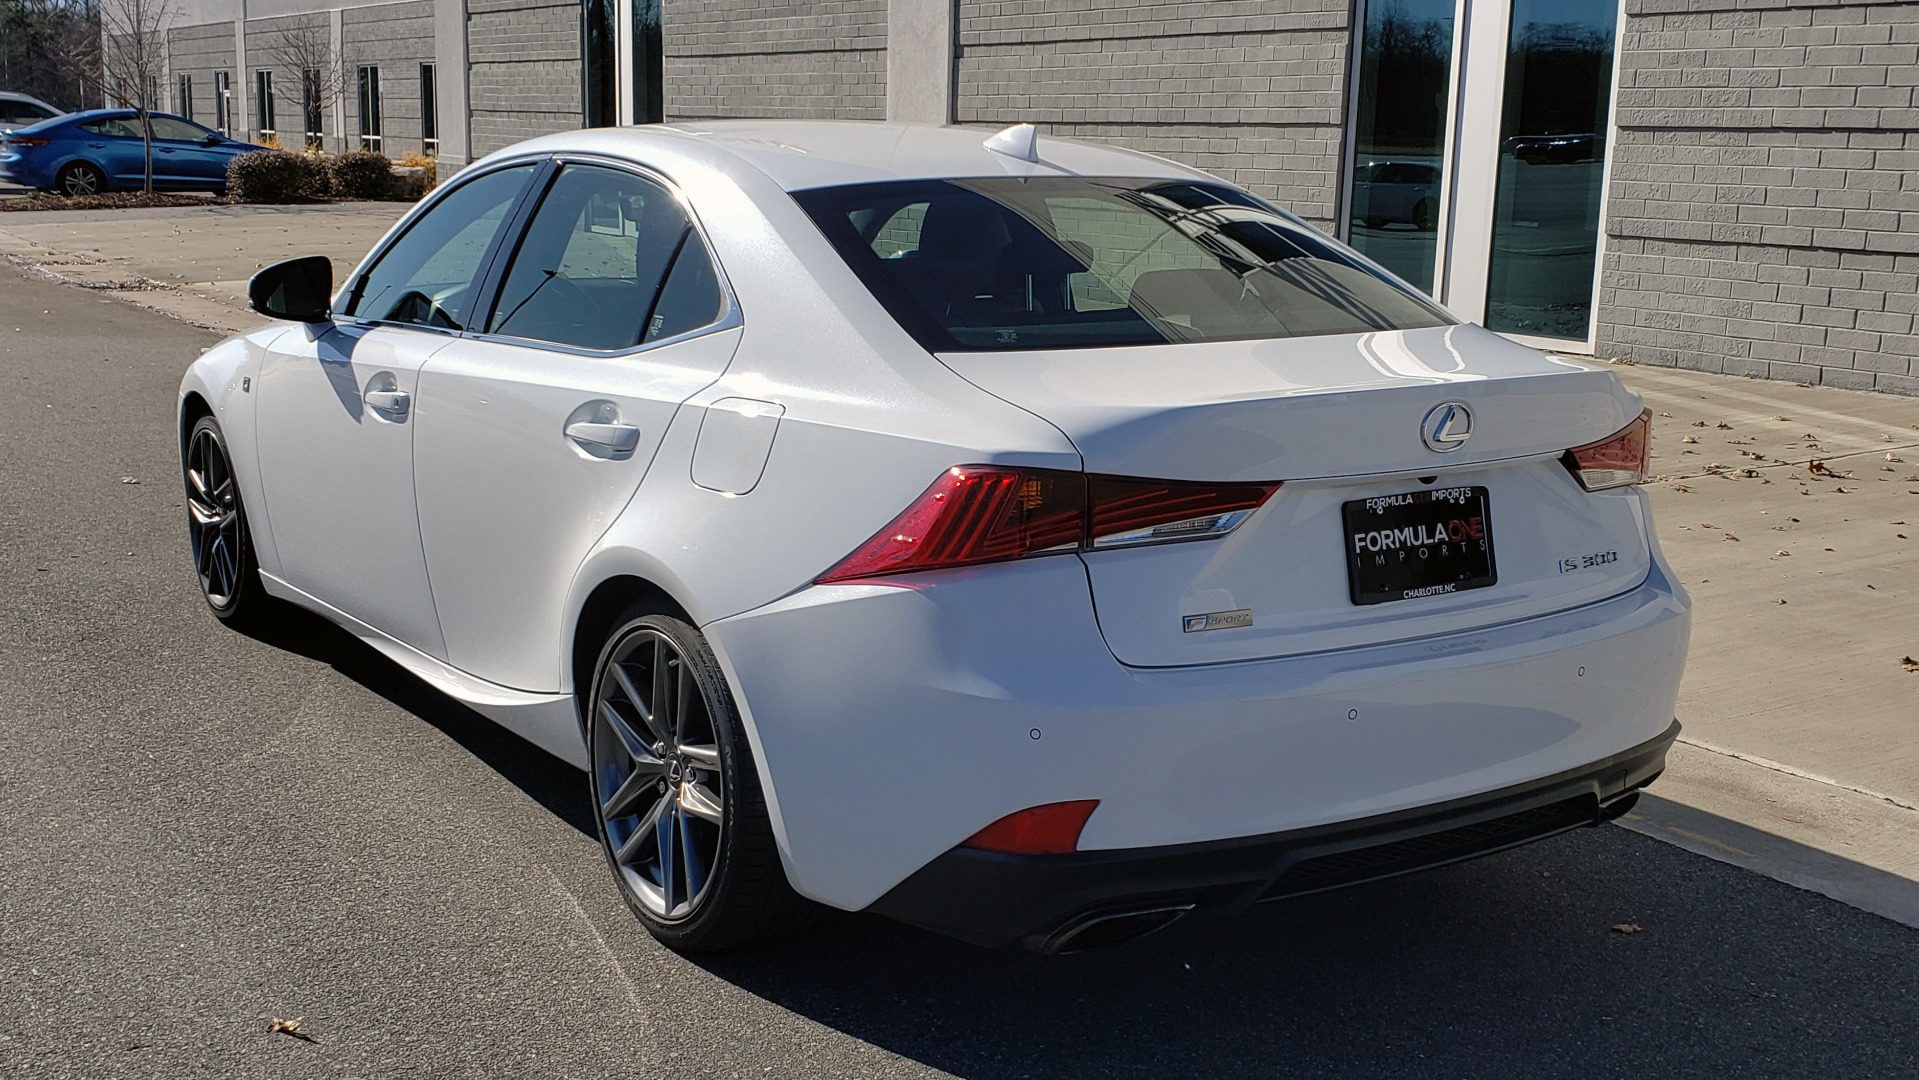 Used 2018 Lexus IS 300 F-SPORT / BSM / SUNROOF / REARVIEW / 18IN WHEELS for sale Sold at Formula Imports in Charlotte NC 28227 3